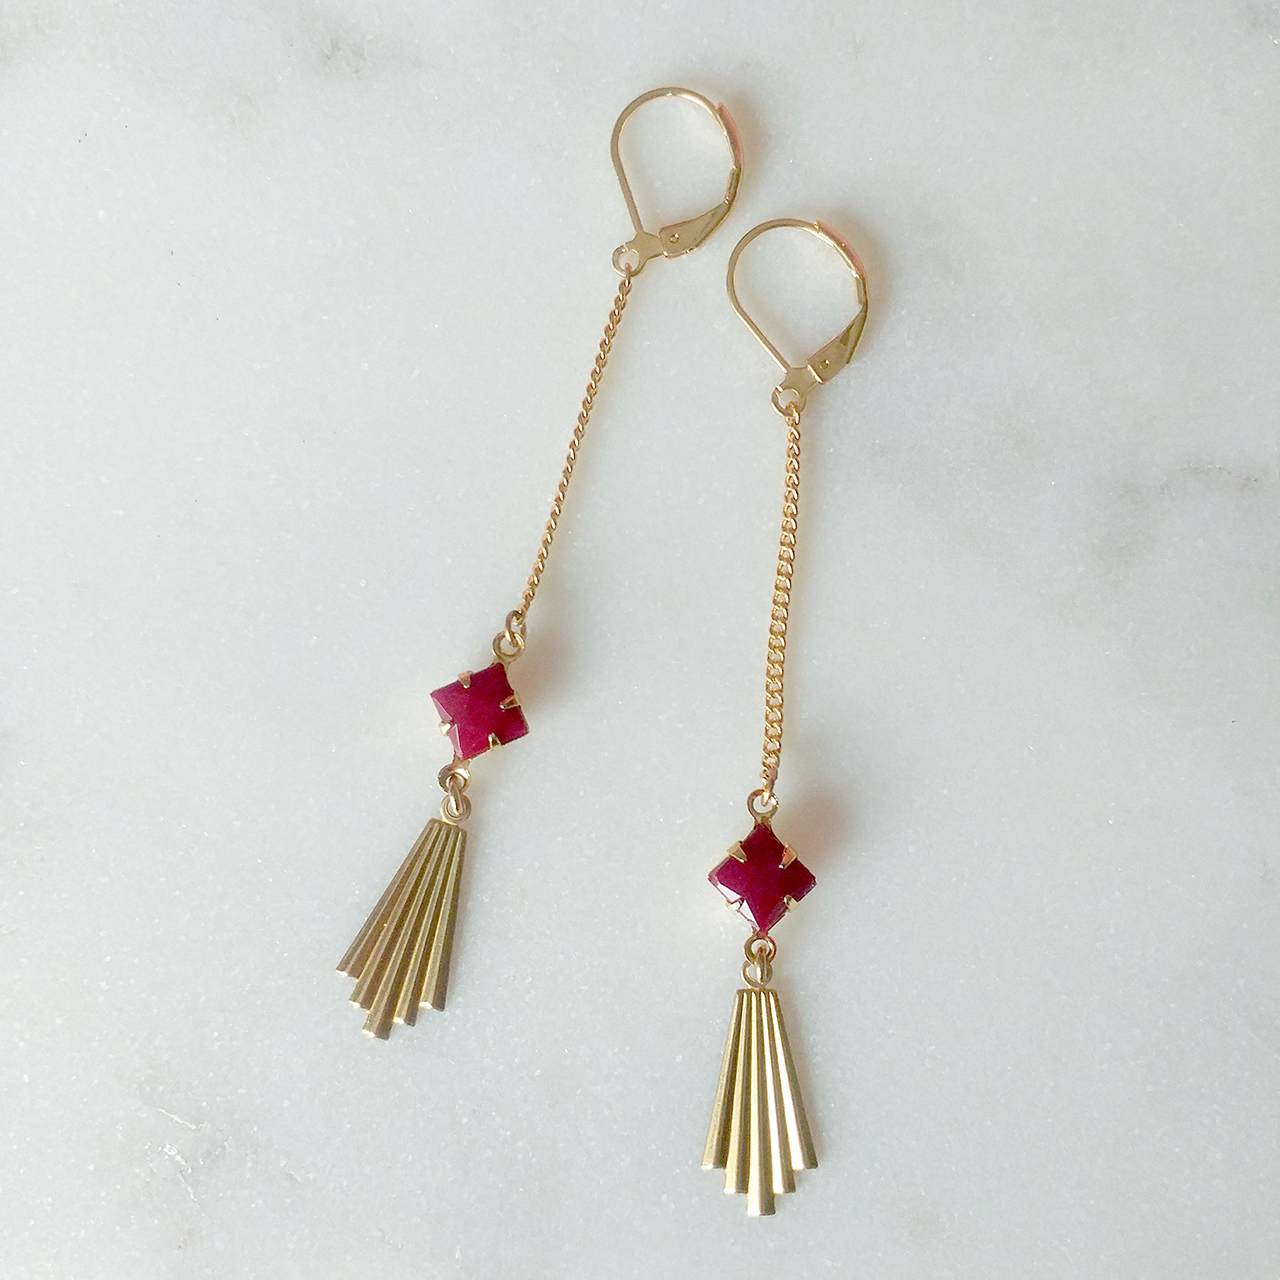 Scorsese Earrings in burgundy (SD1198)